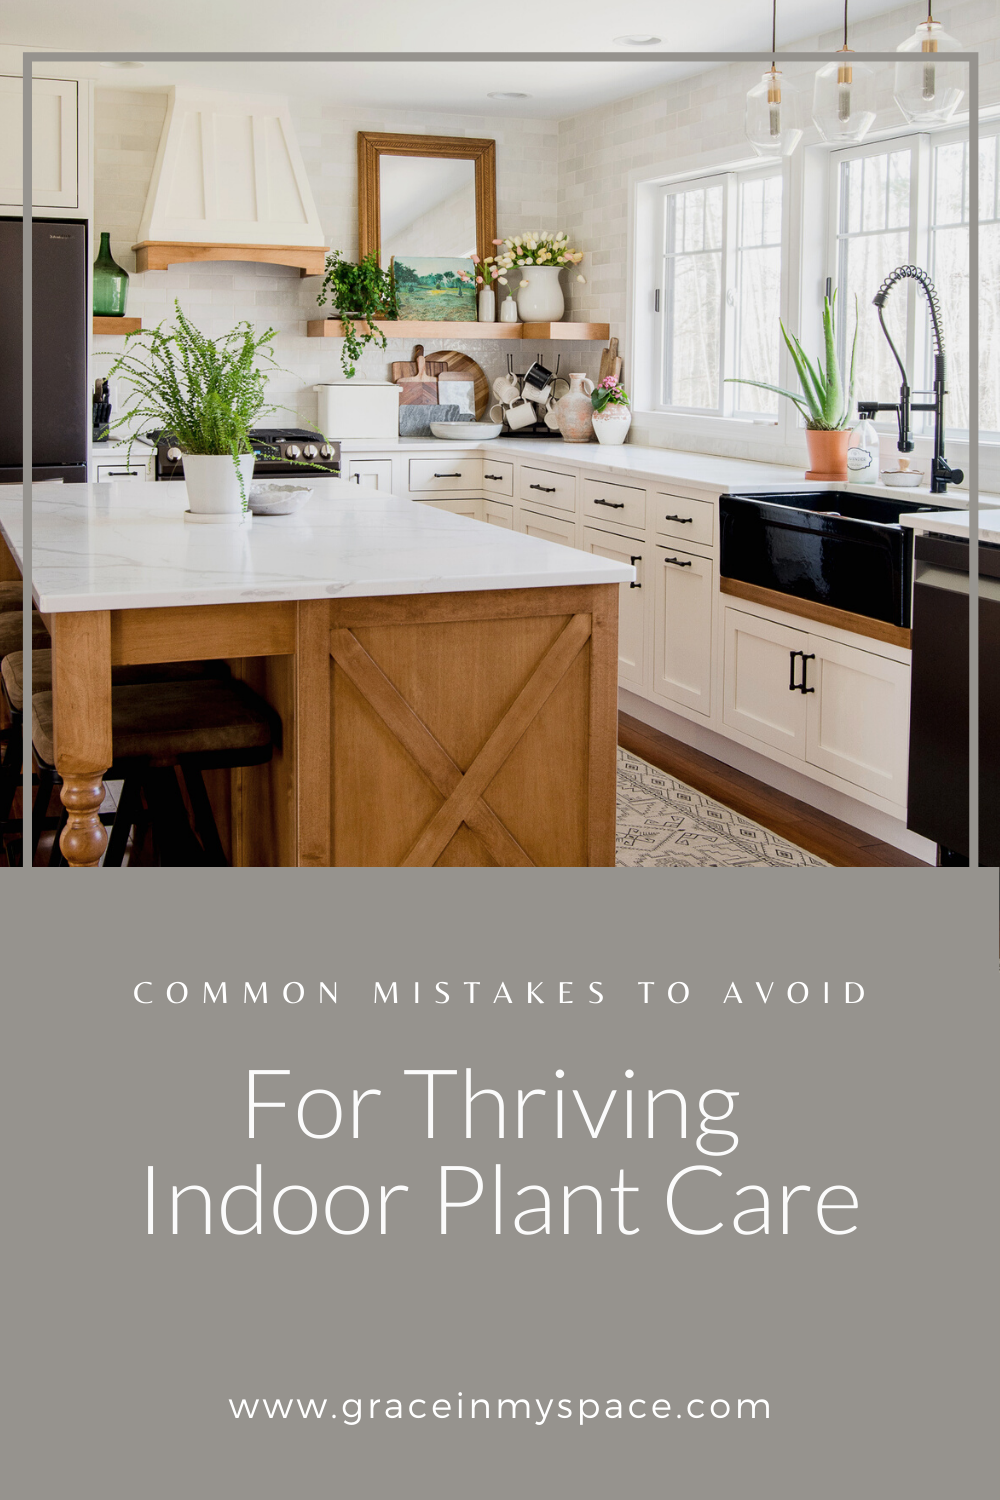 Common Mistakes to Avoid for Indoor Plant Care